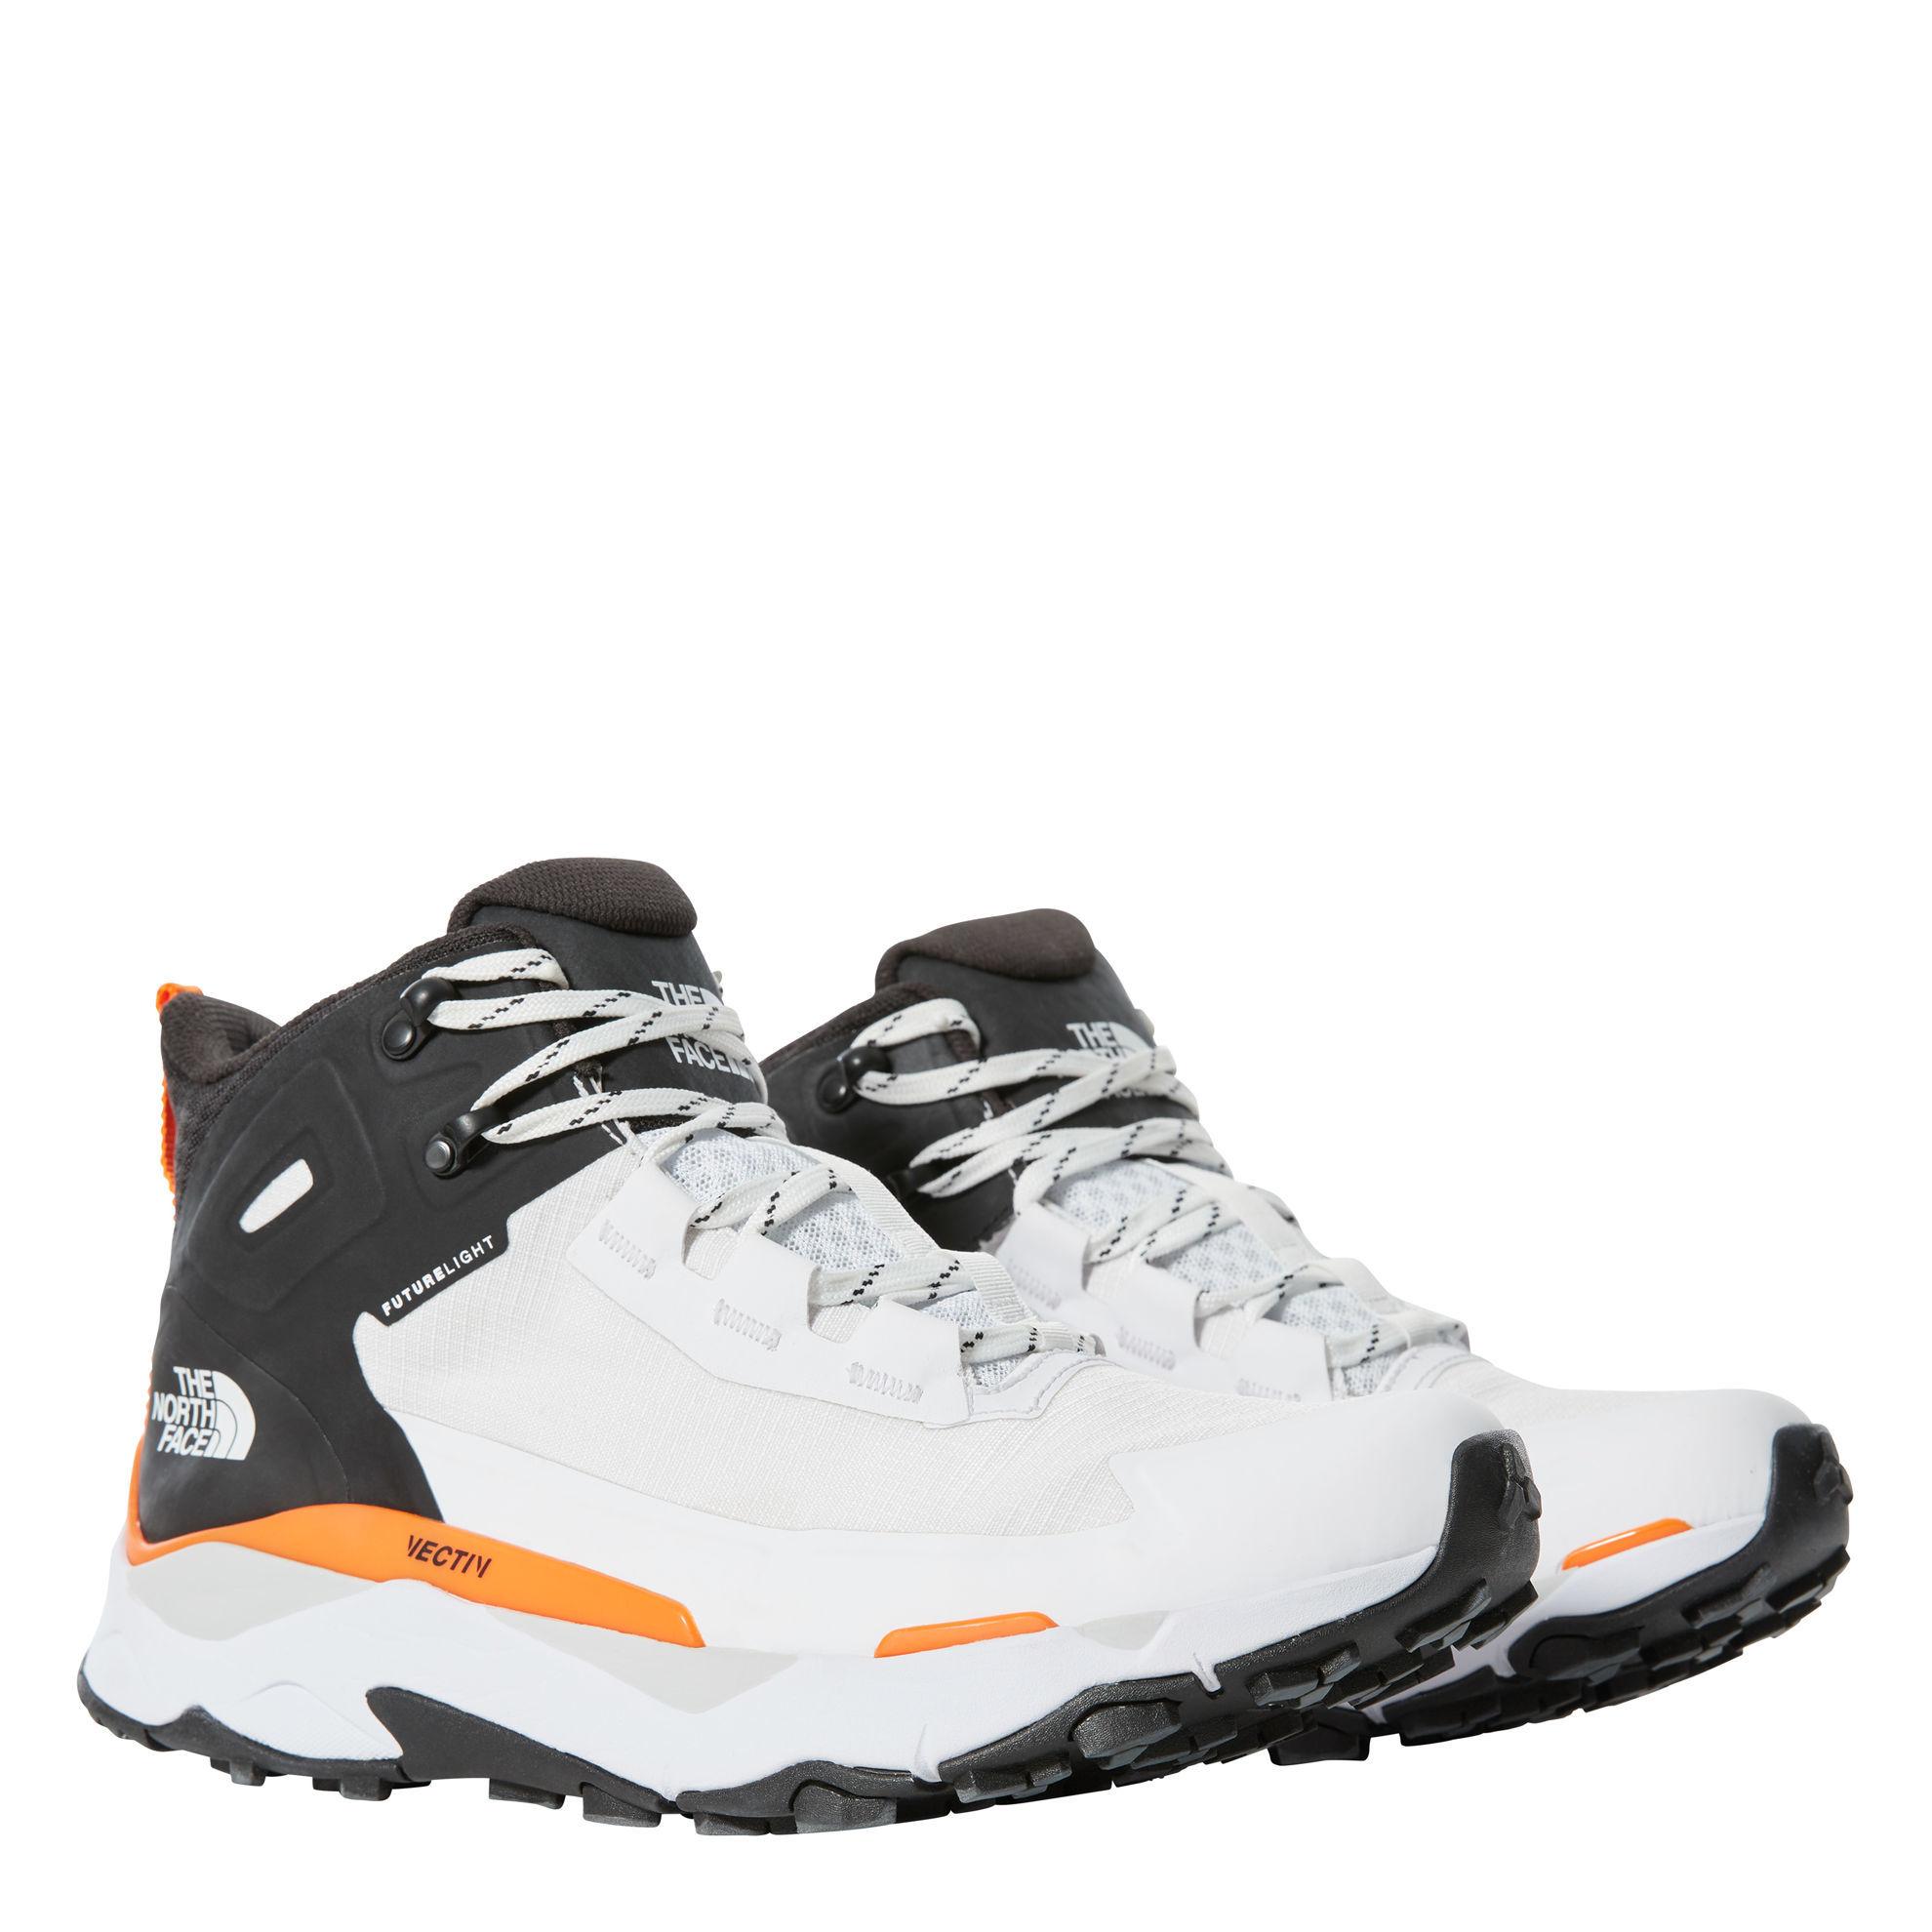 Bilde av The North Face Men's Vectiv Exploris Mid Futurelight White/Black